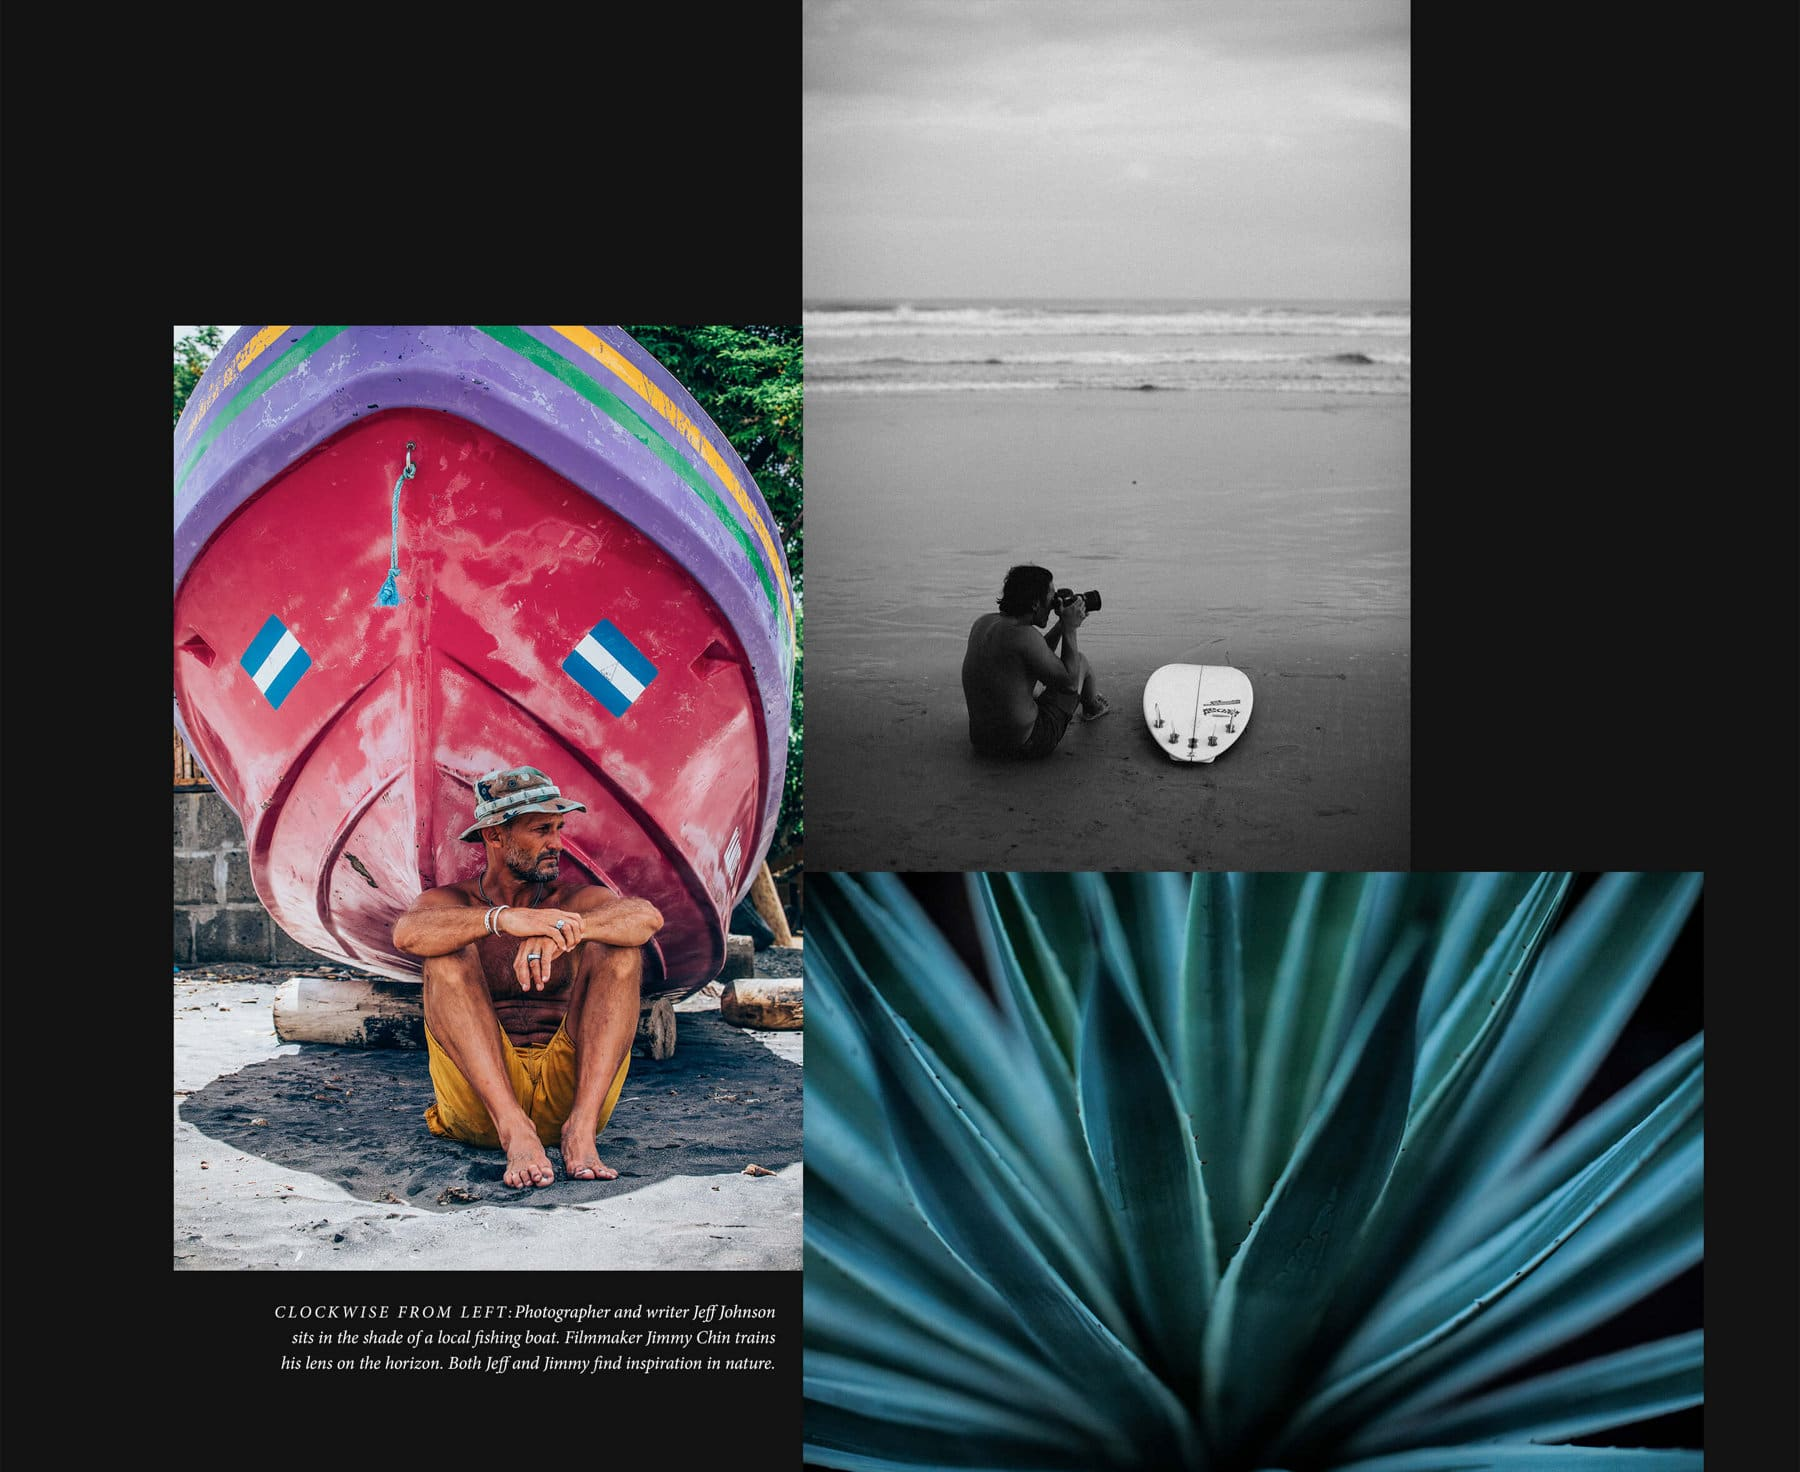 A collage combines three of Jeff Johnson and Jimmy Chin's photos of Nicaragua. One color image shows Jeff sitting in the shade of a colorfully painted boat on a beach. A black-and-white image shows Jeff sitting on the beach next to a surfboard focusing his camera on the horizon. The third image is a close-up shot of an aloe plant.